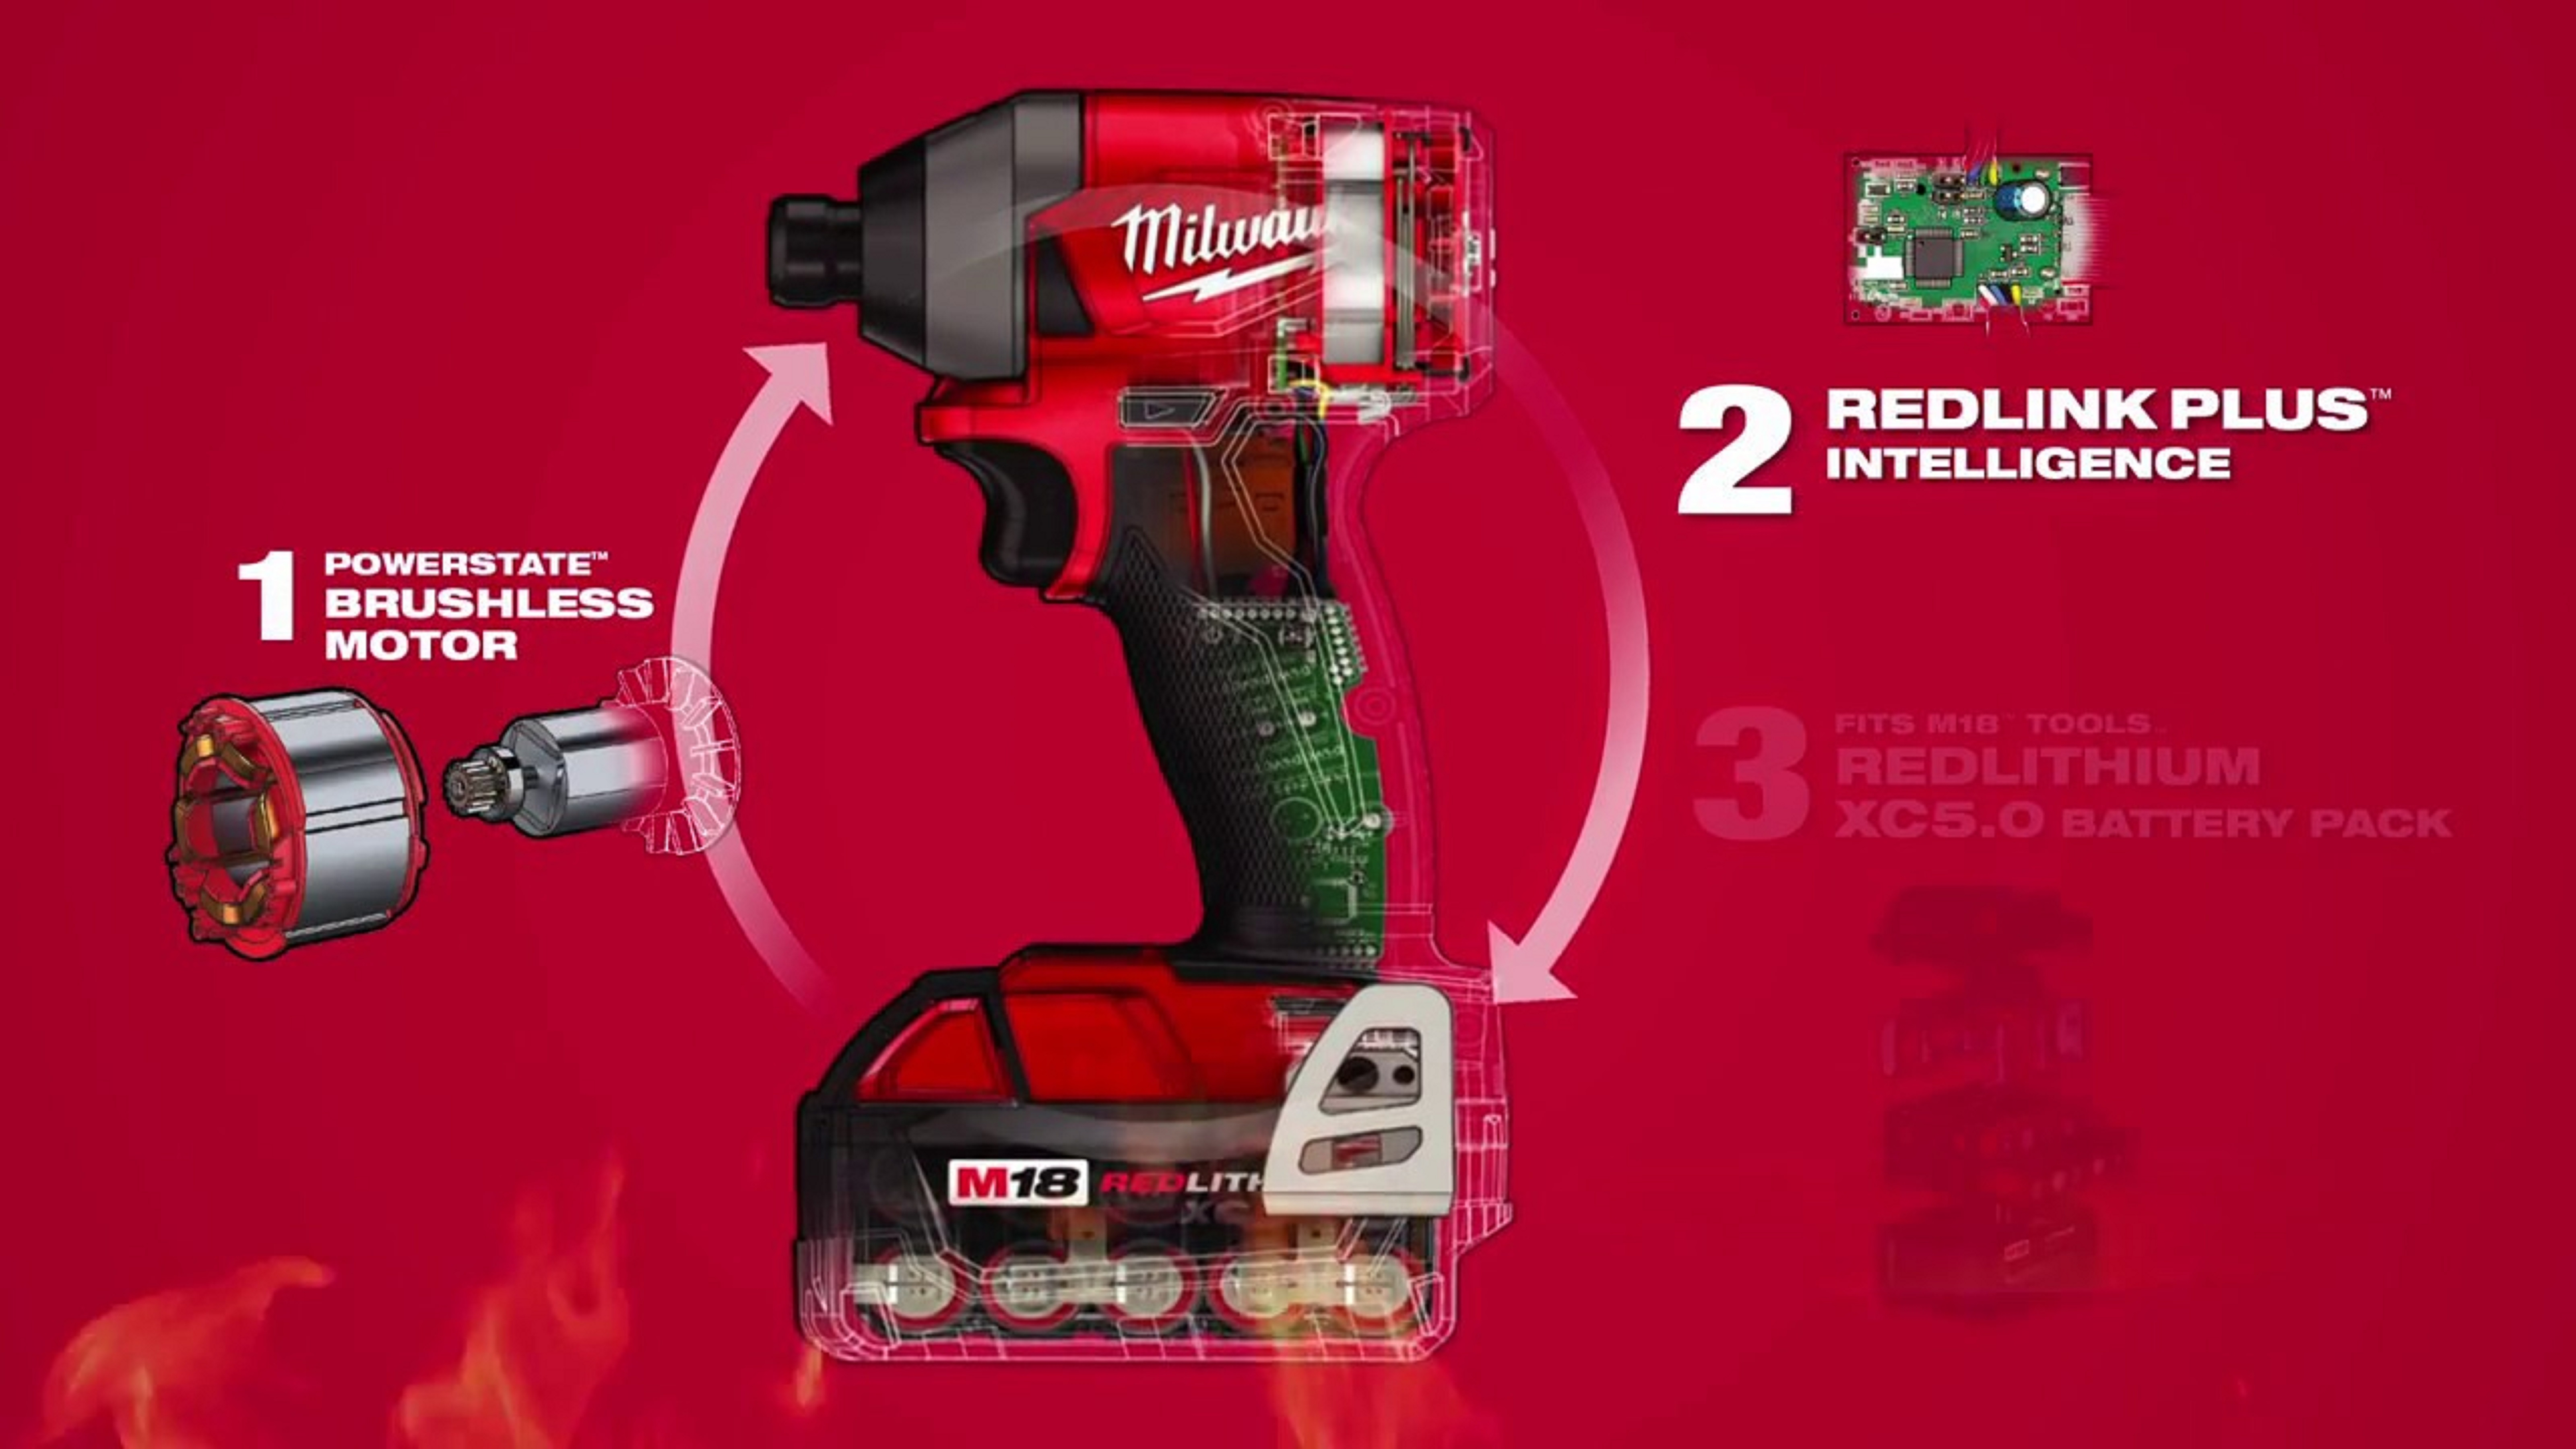 Safety and performance features give Milwaukee power tools the edge